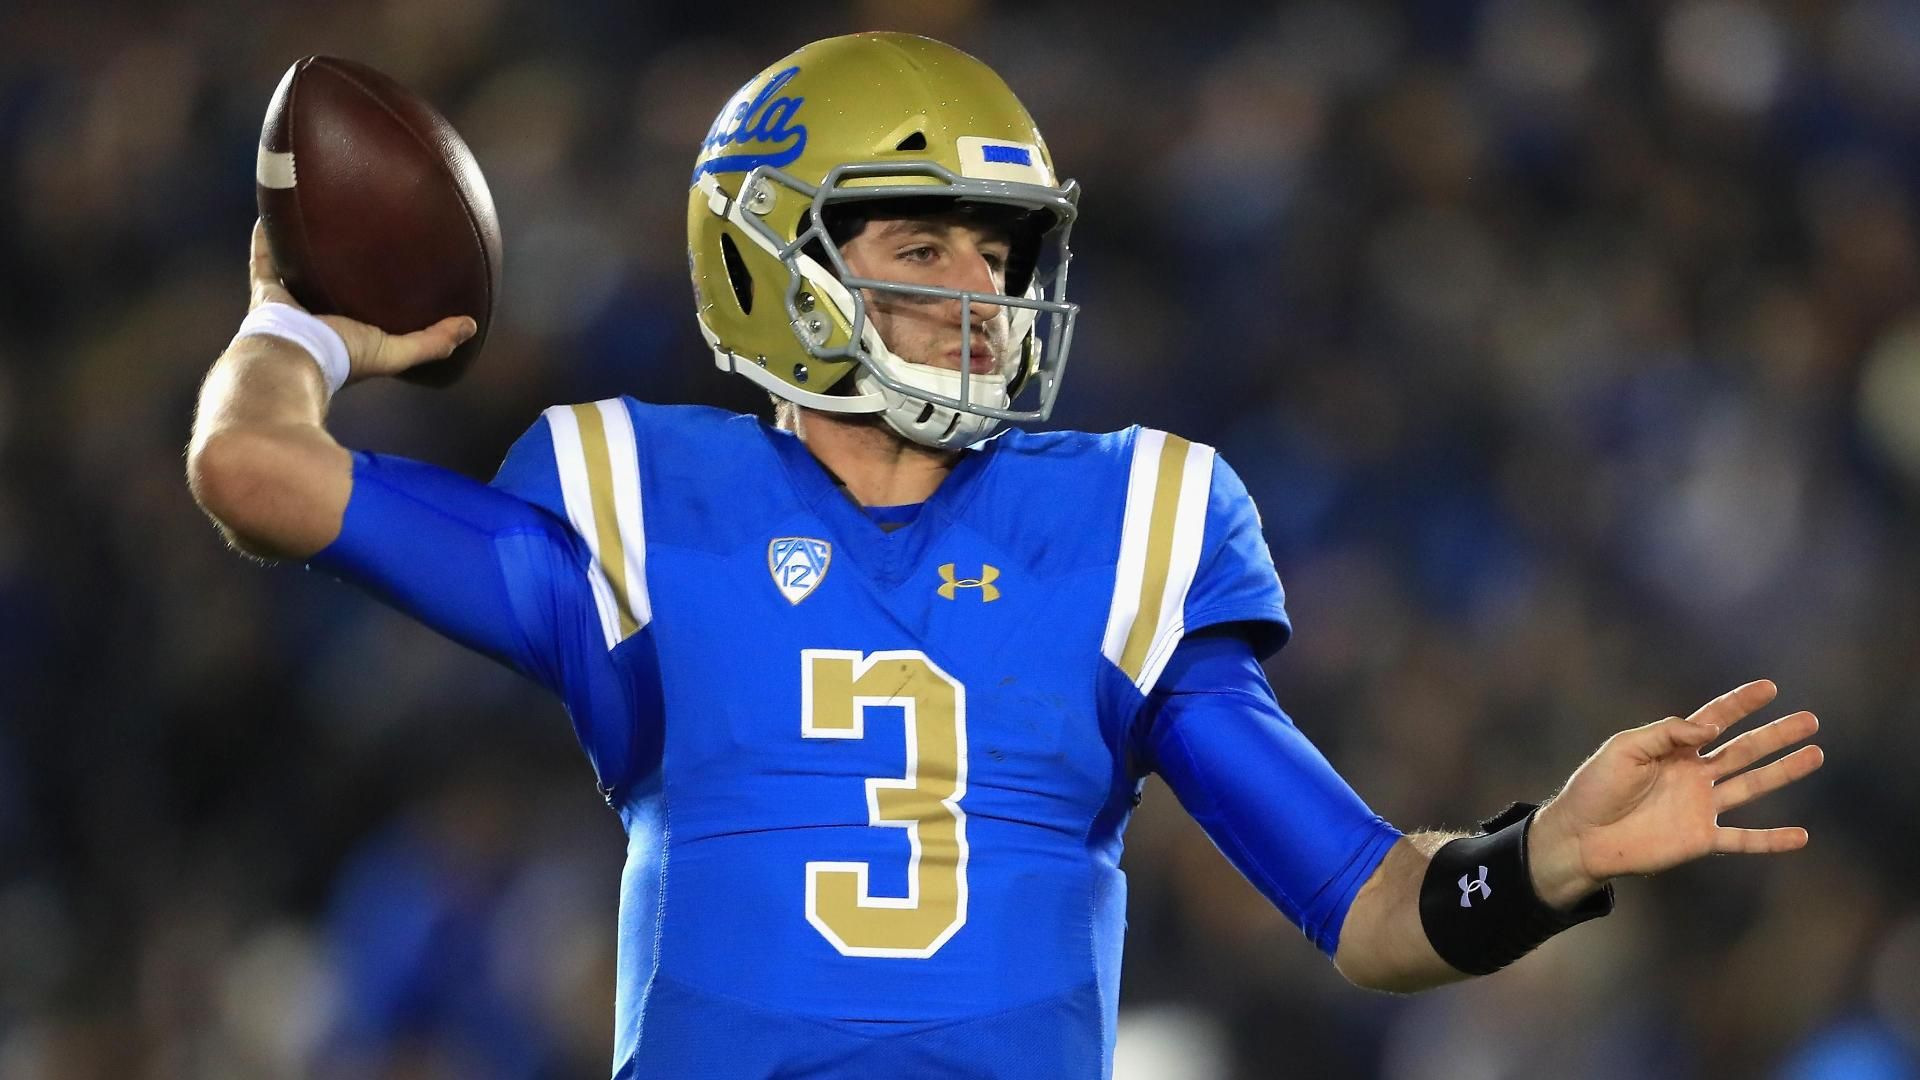 Rosen ready to take talents to the next level